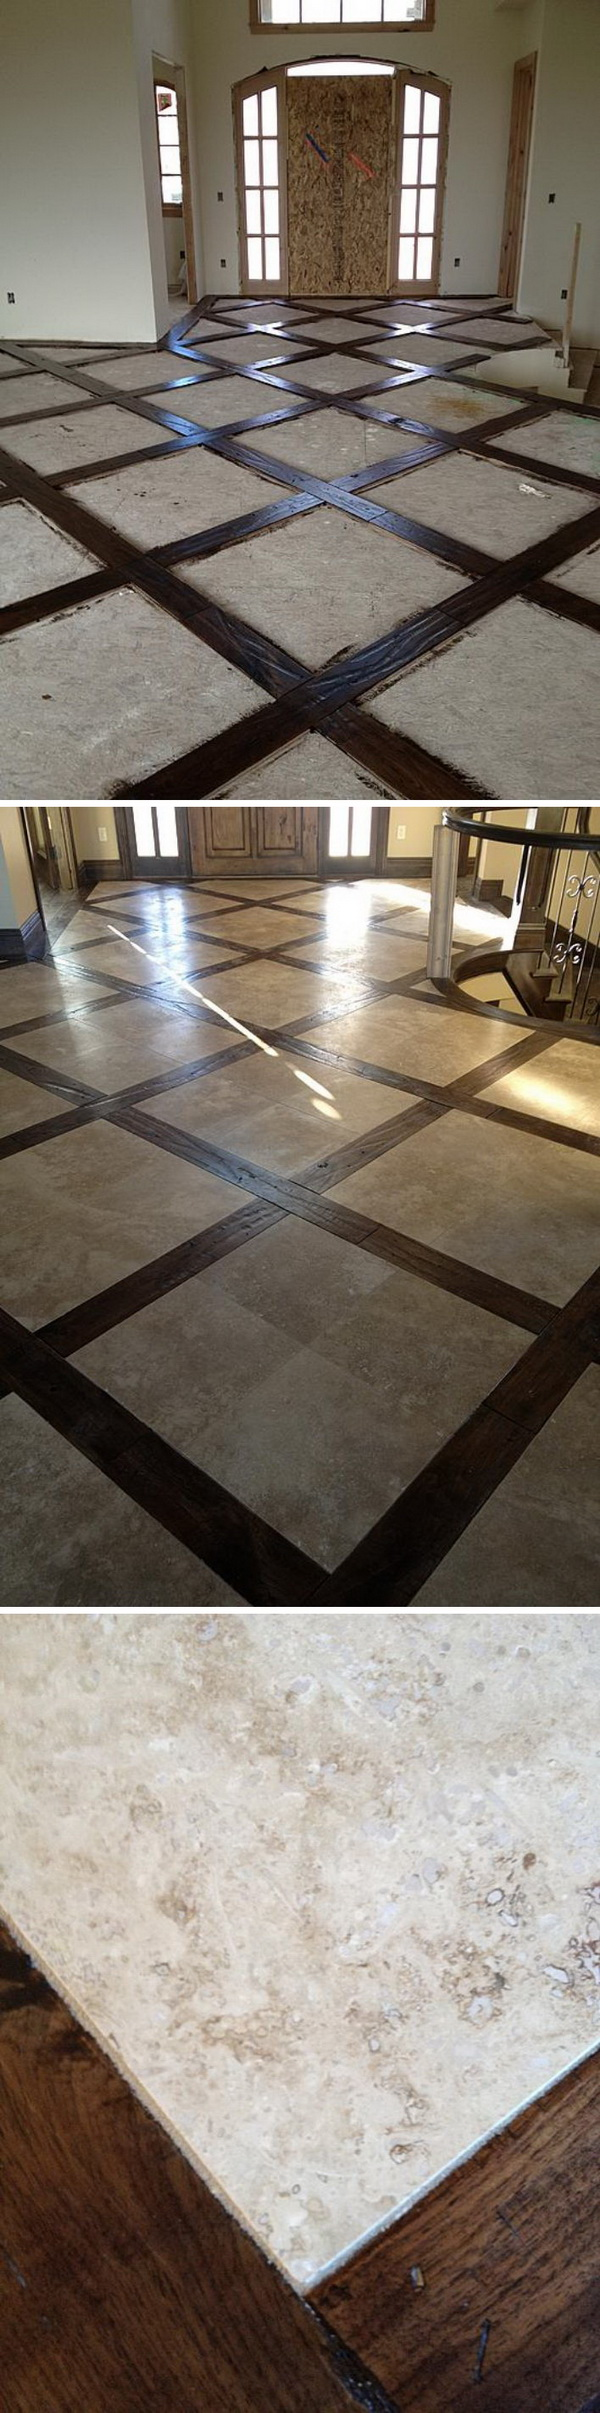 30 awesome flooring ideas for every